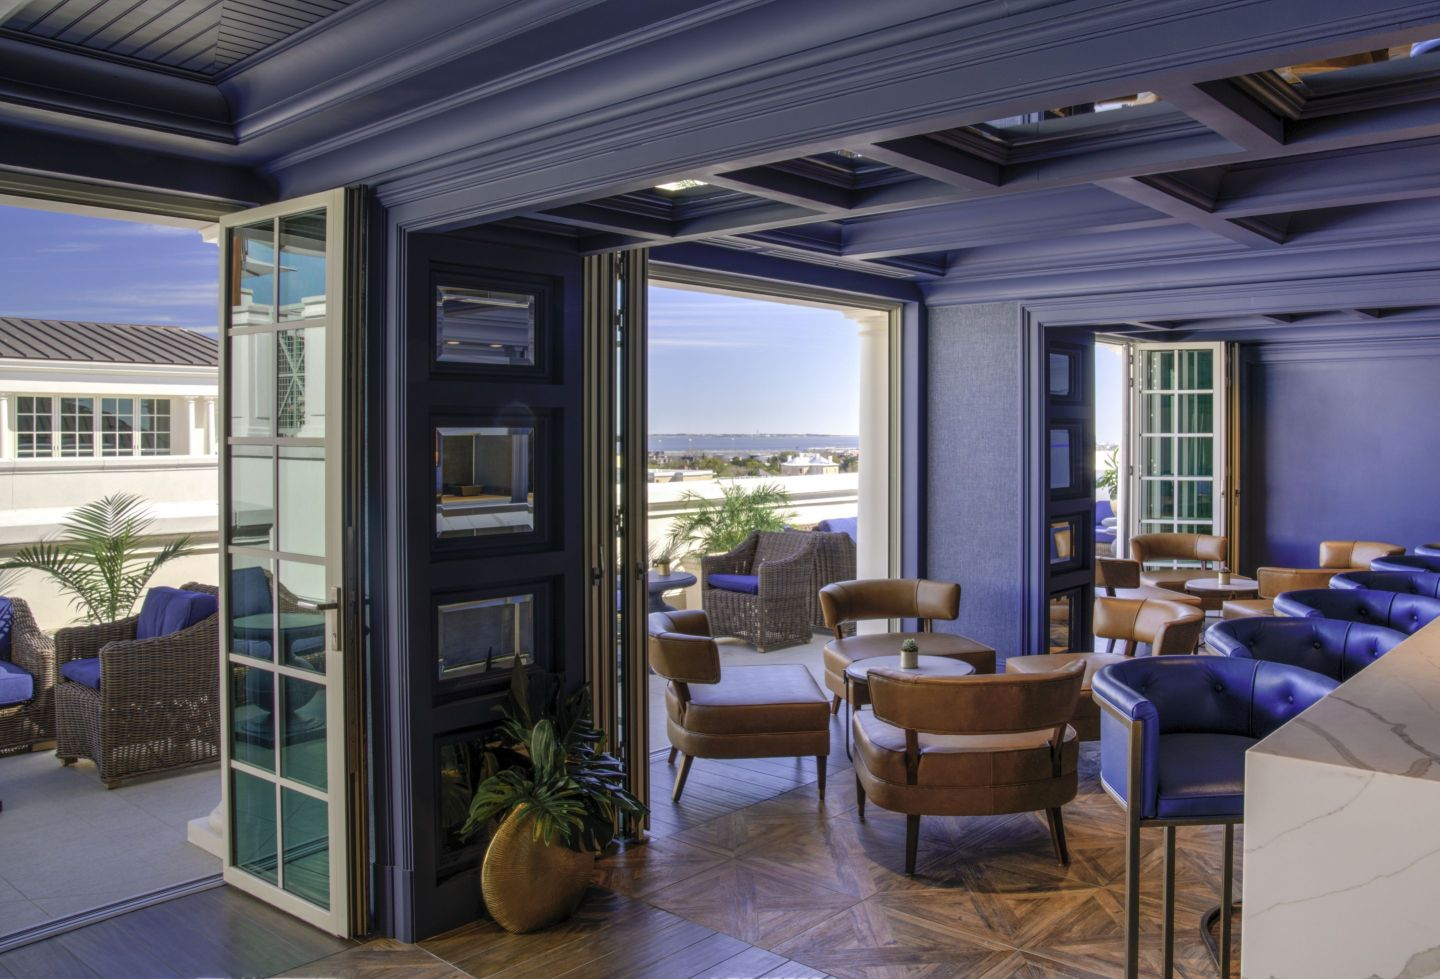 Fiat-Lux-Rooftop-Bar_Credit-Modus-Photography-1-1440x979 Design Tour: Hotel Bennett Debuts in Charleston, SC